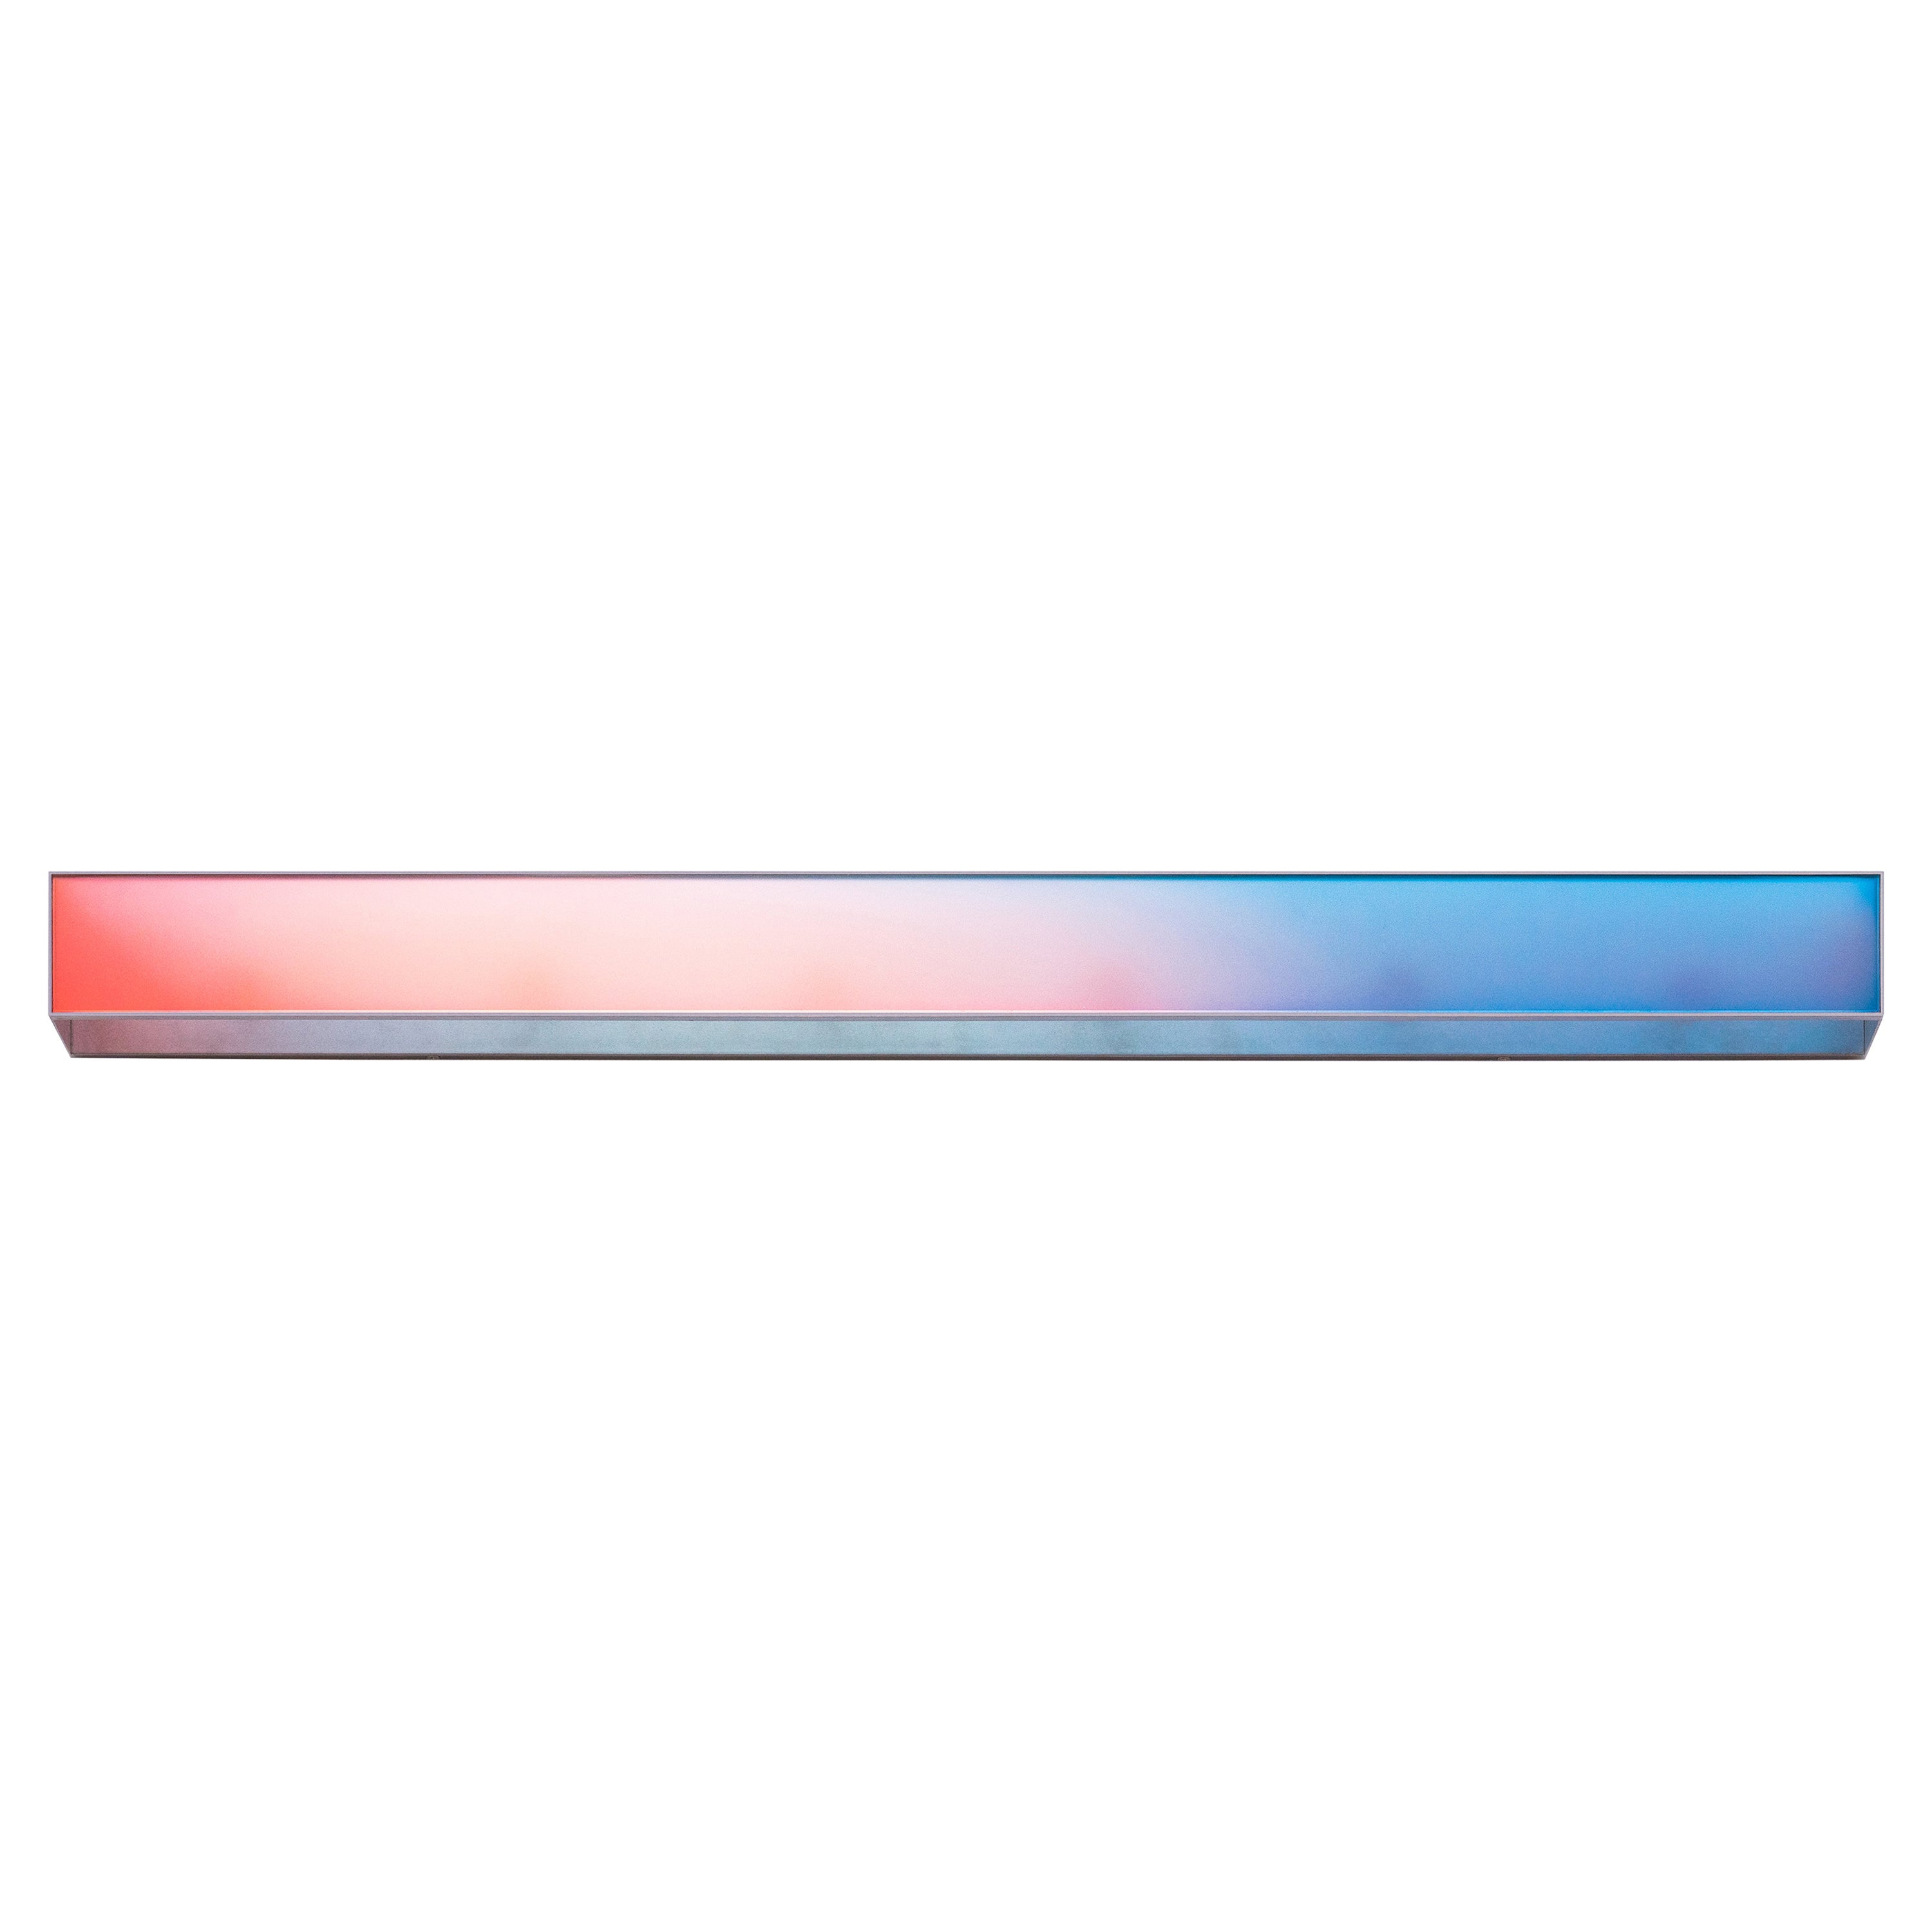 Gradient Wall Hanger 'HALO' by Buzao